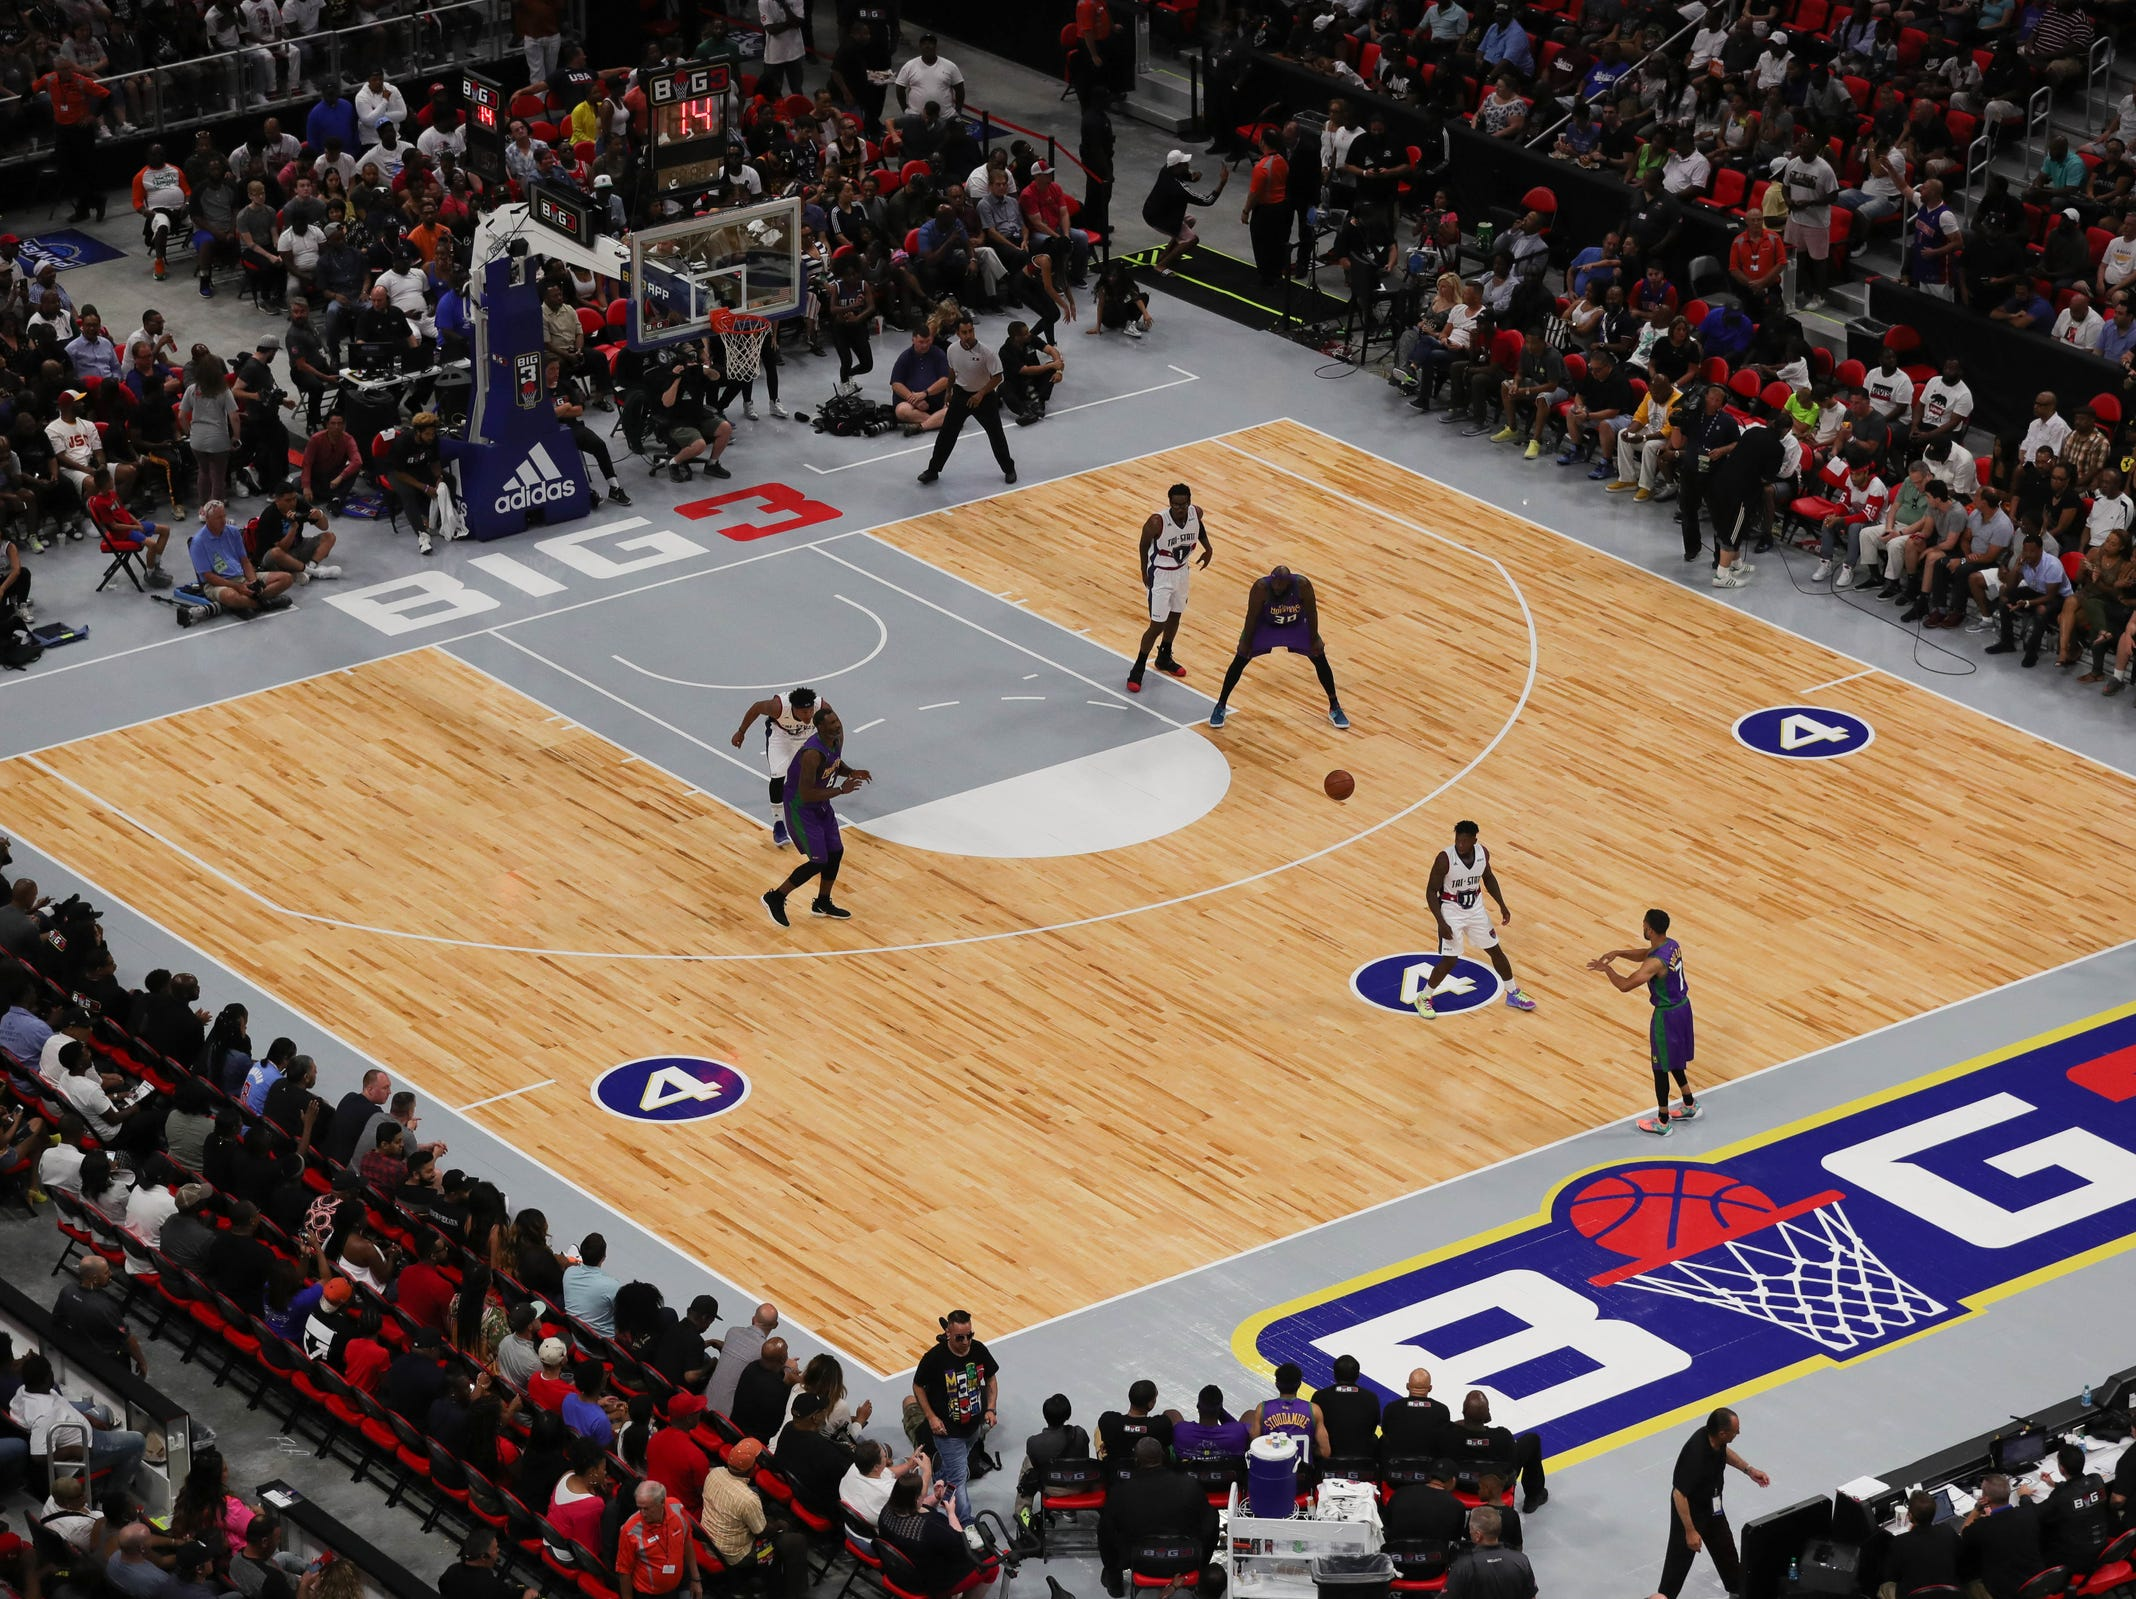 Overall during the Ball Hogs vs 3s Company's on Friday, July 13, 2018 at Little Caesars Arena in Detroit.